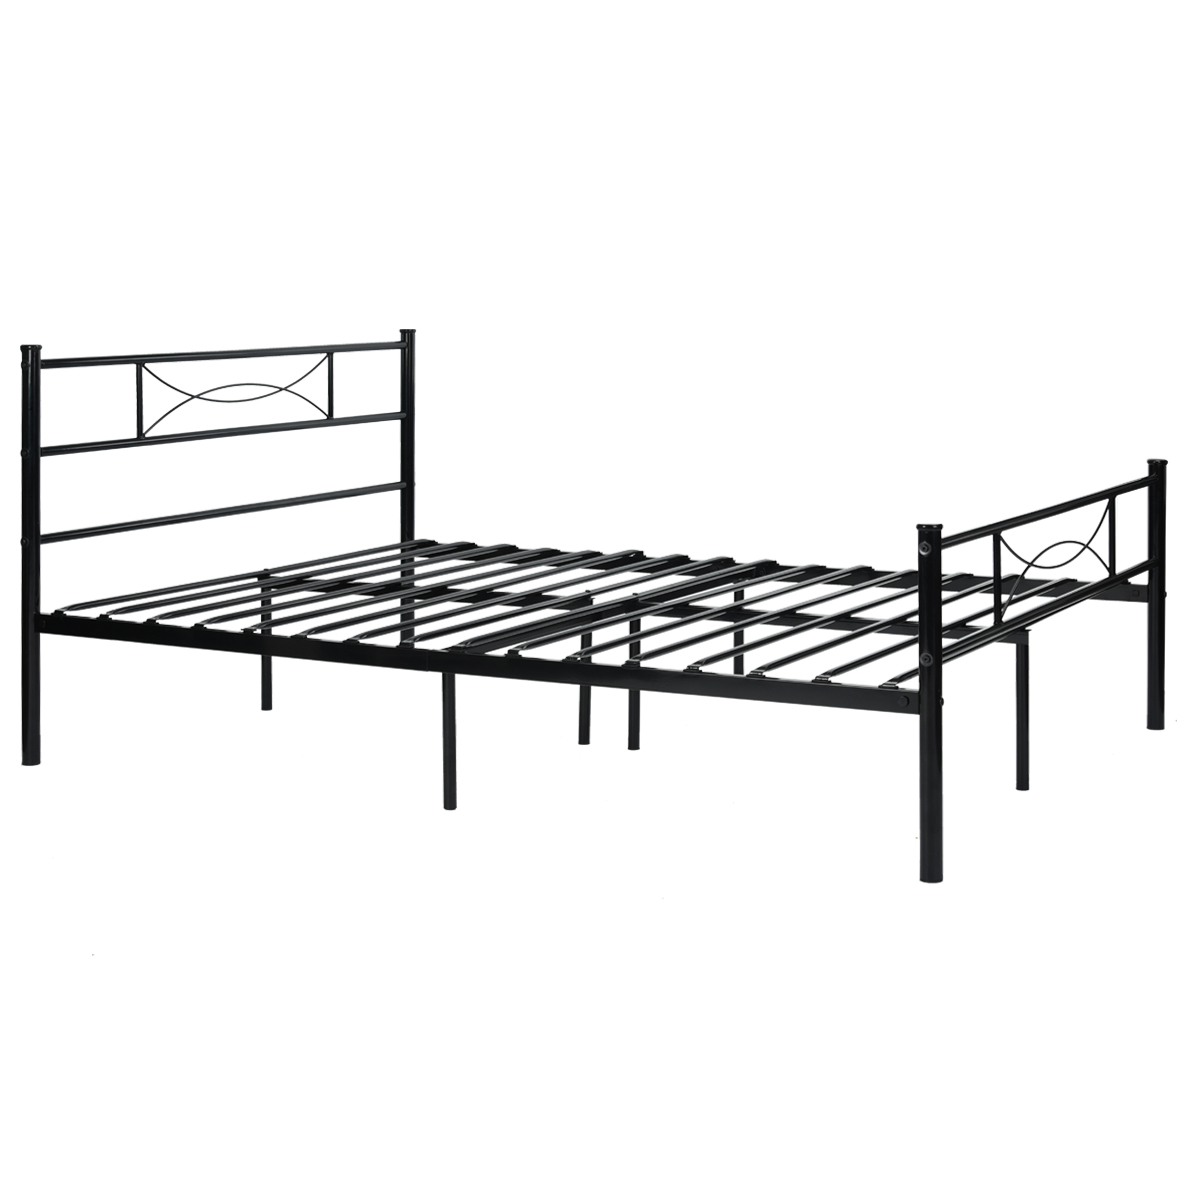 Platform metal bed frame foundation headboard furniture Metal bed frame twin